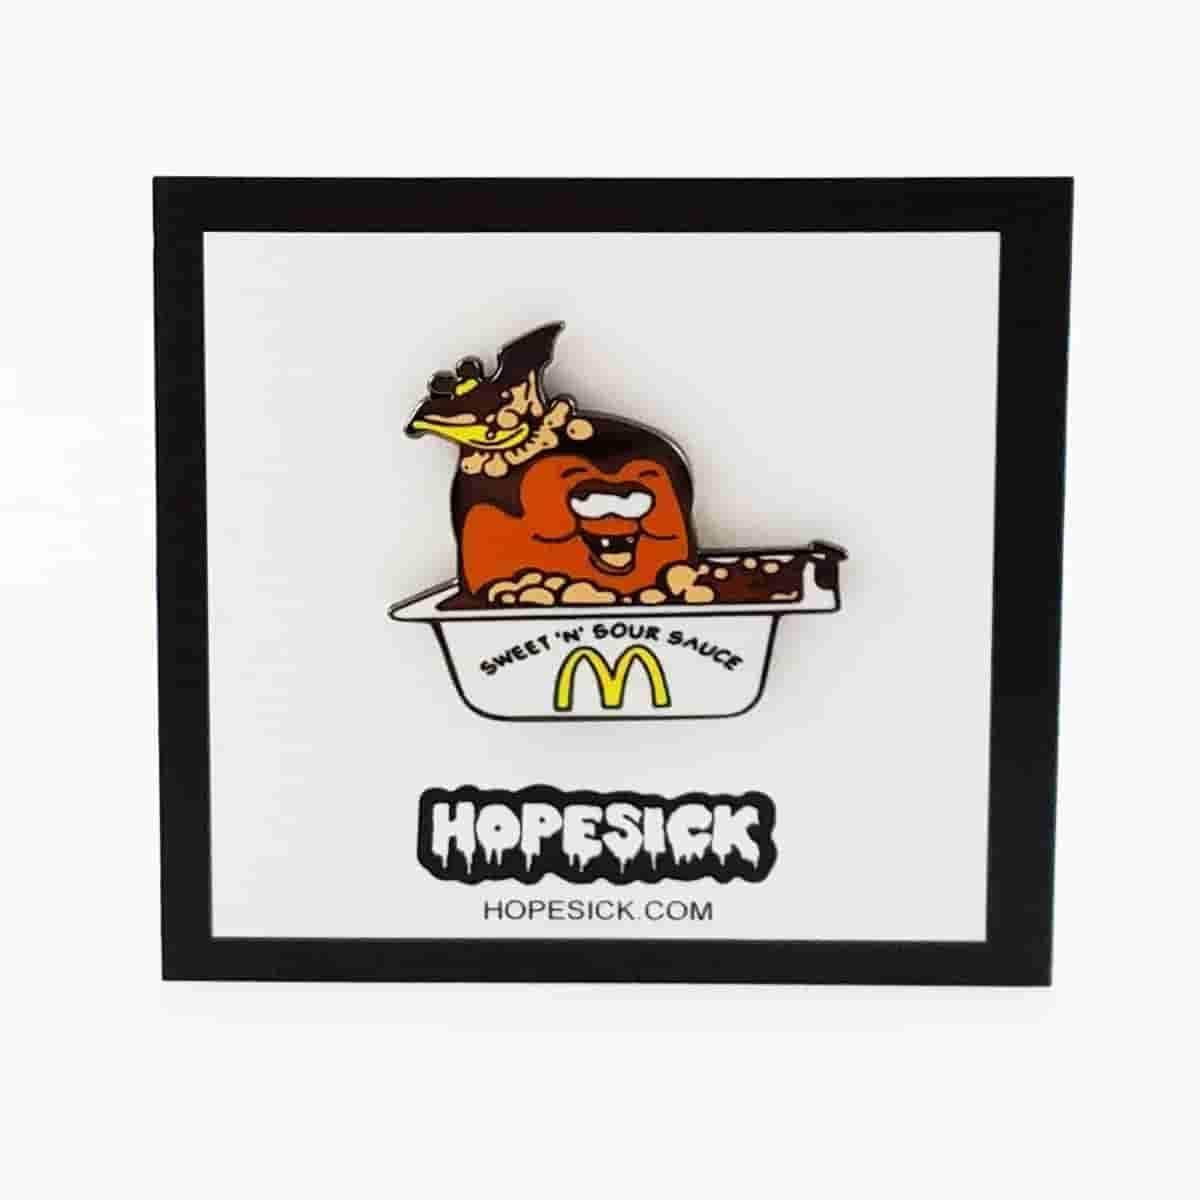 Dracula McNugget in Bath Sauce Enamel Pin by Hope Sick - iamRetro.com